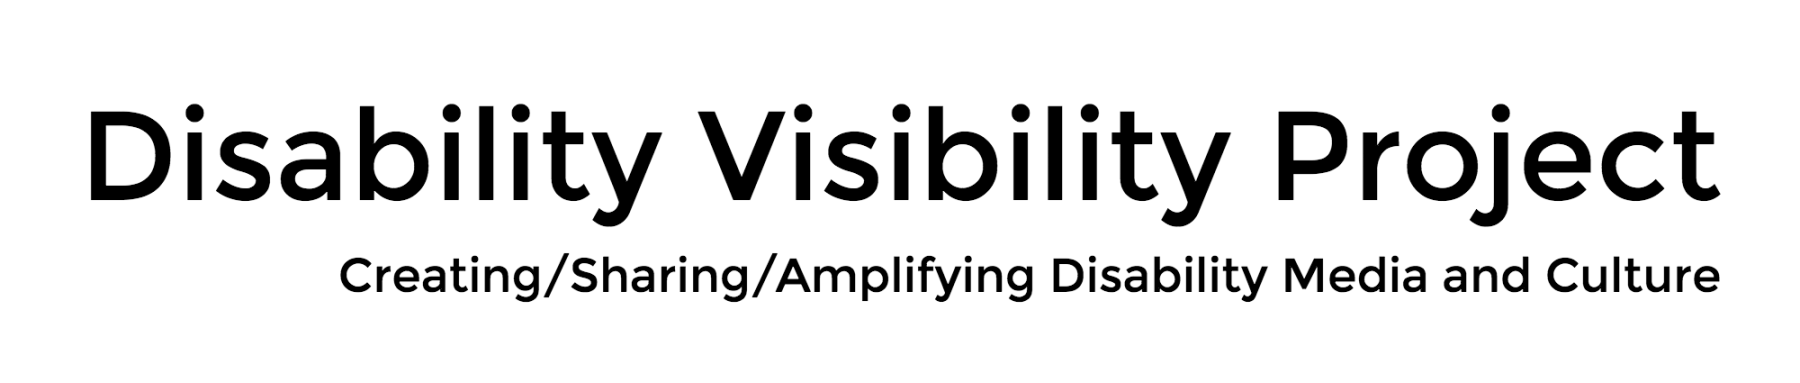 Disability Visibility Project: Creating/Sharing/Amplifying Disability Media and Culture